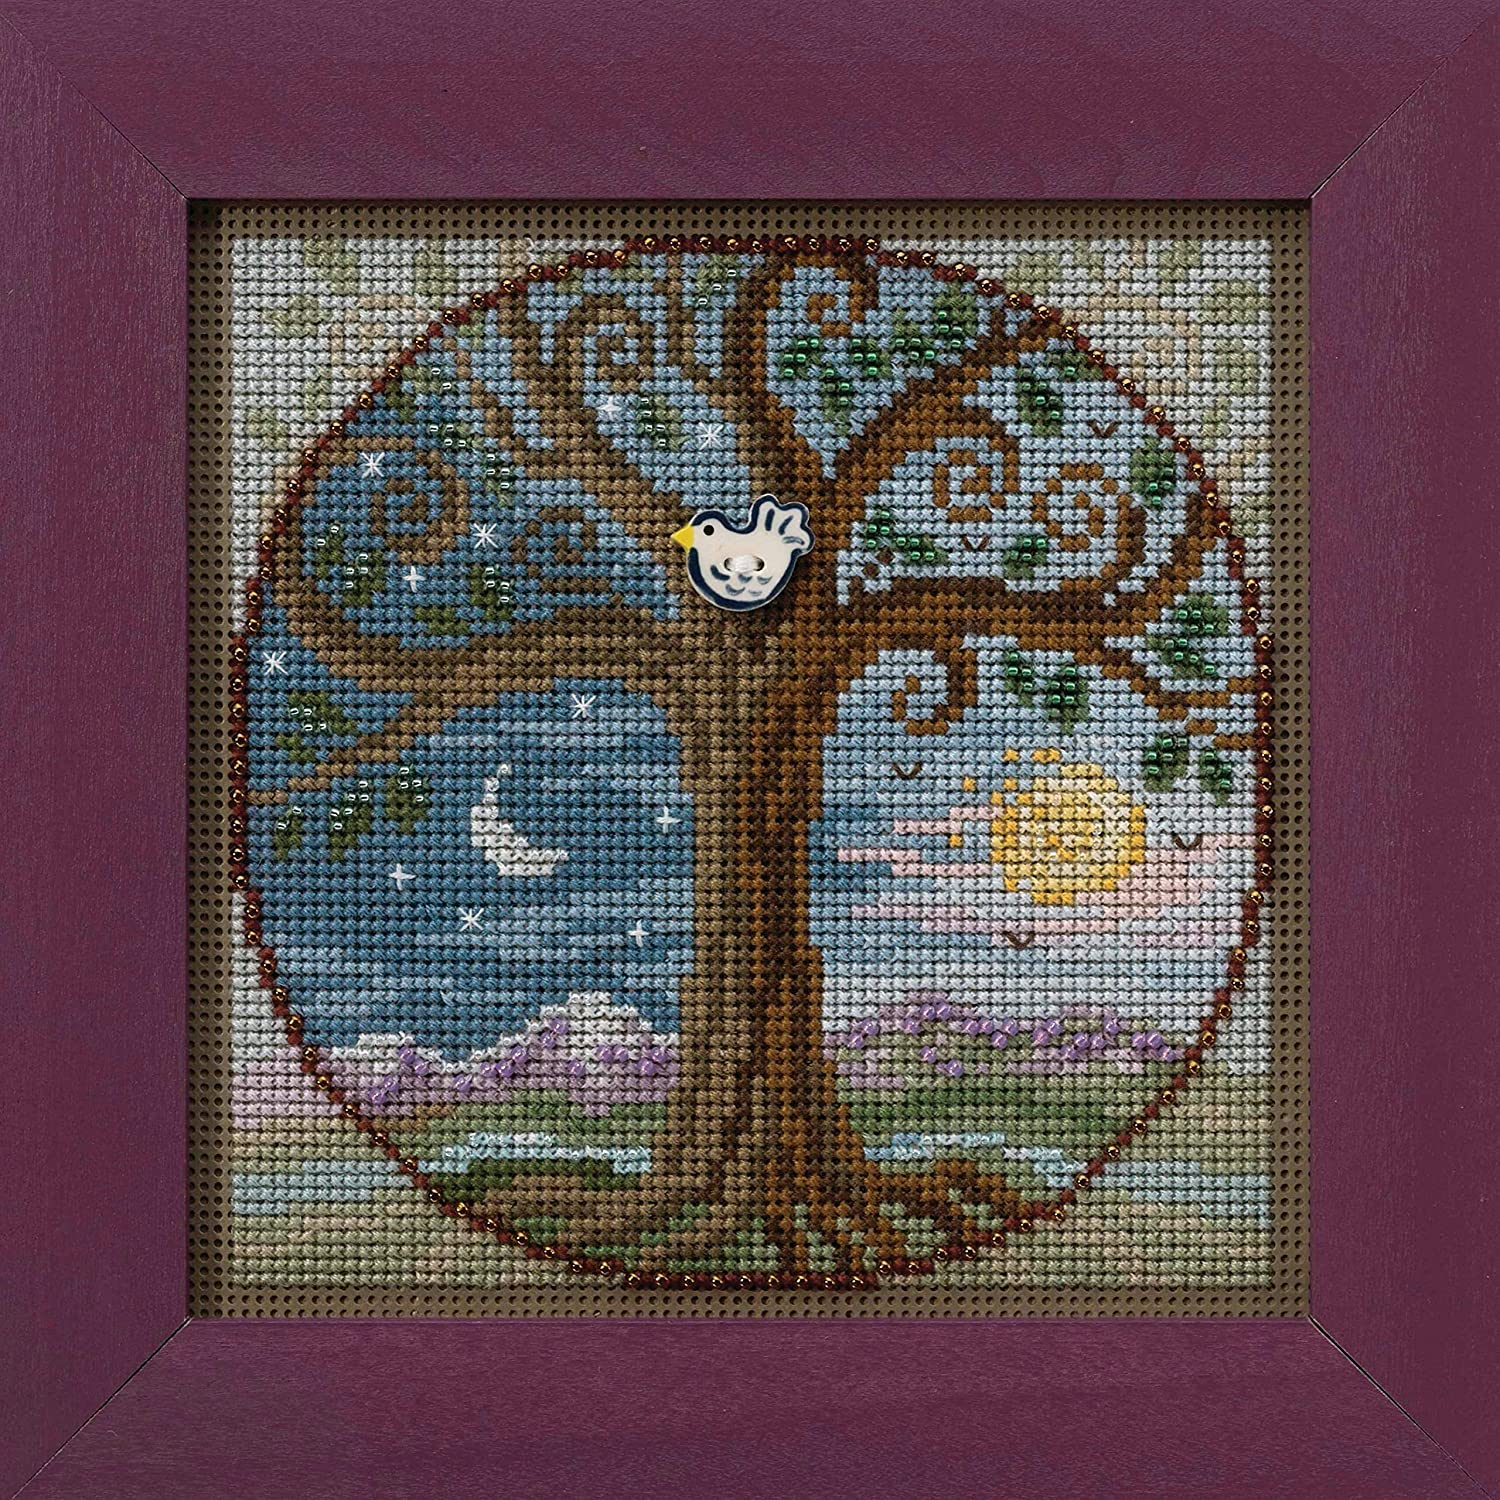 Tree of Life Beaded Counted Cross Stitch Kit Mill Hill 2020 Buttons /& Beads Autumn MH142023